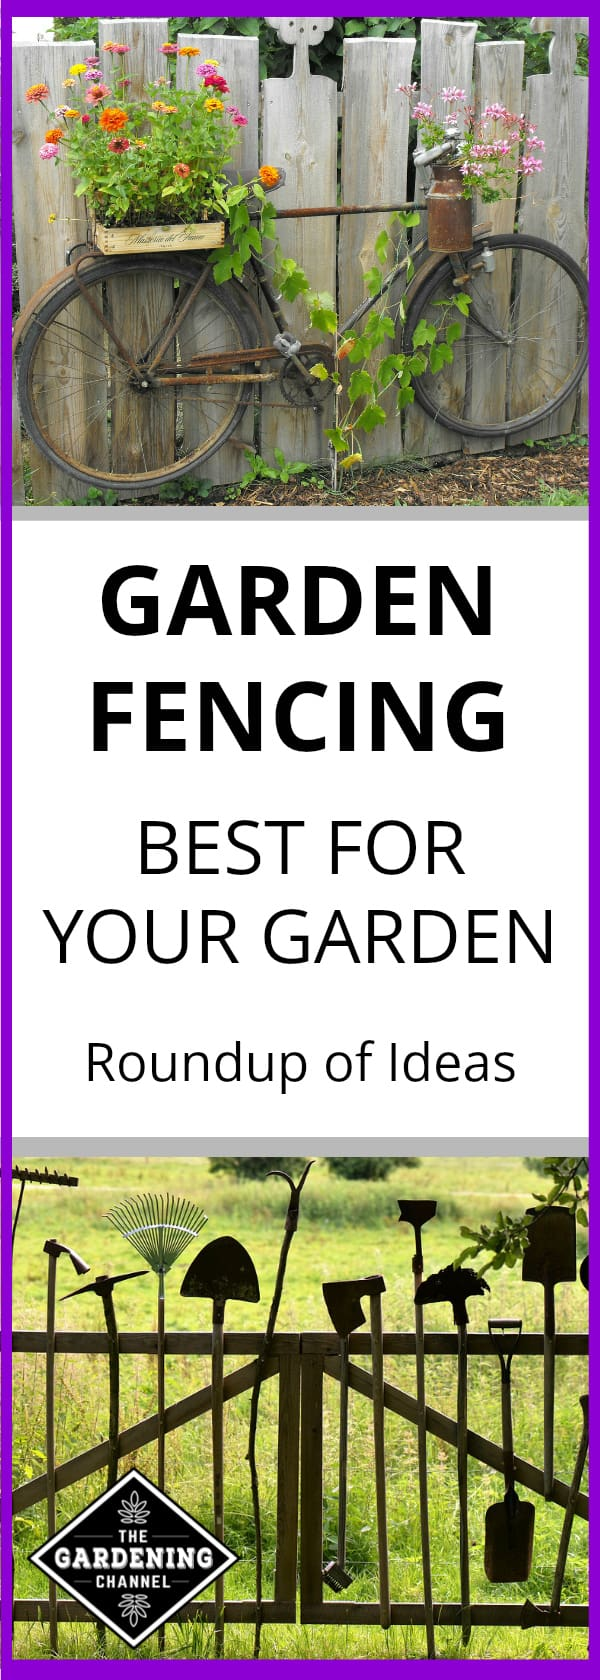 Garden Fencing: A Roundup of the Best Ideas - Gardening Channel